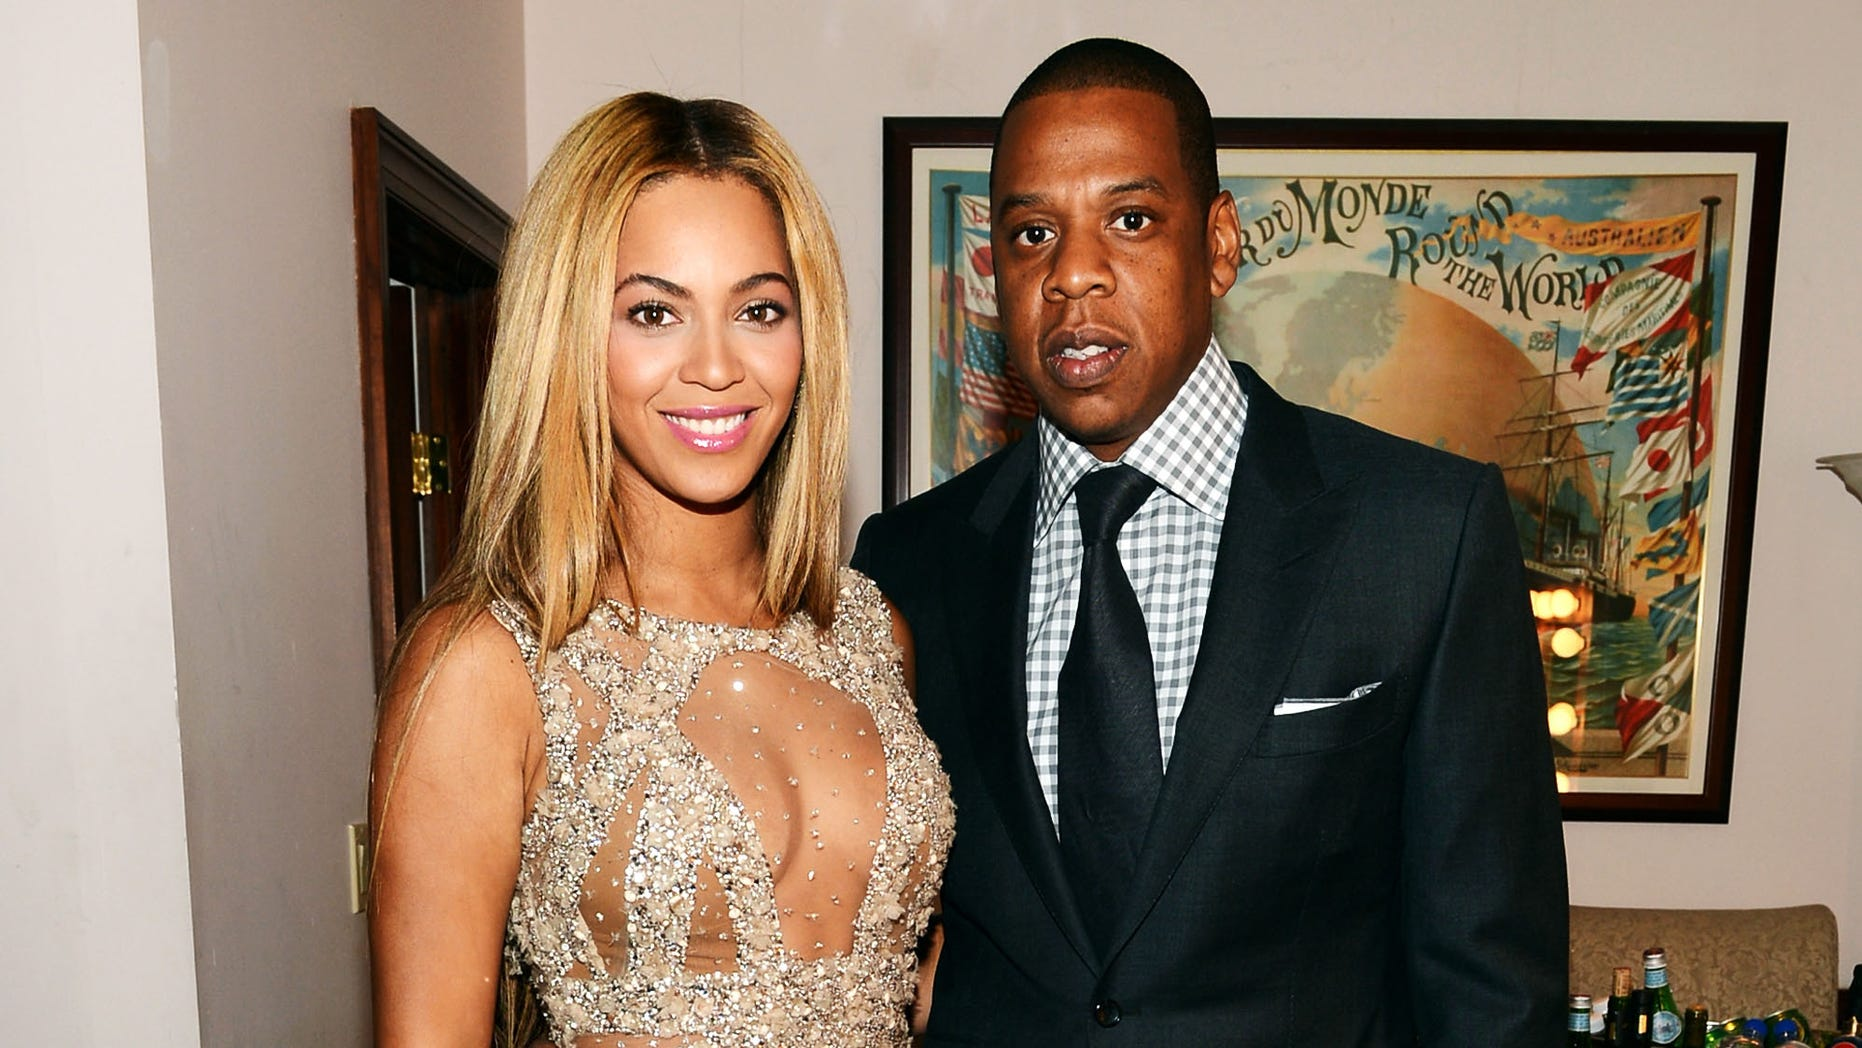 Beyonce and Jay-Z in New York City, in February 2013.